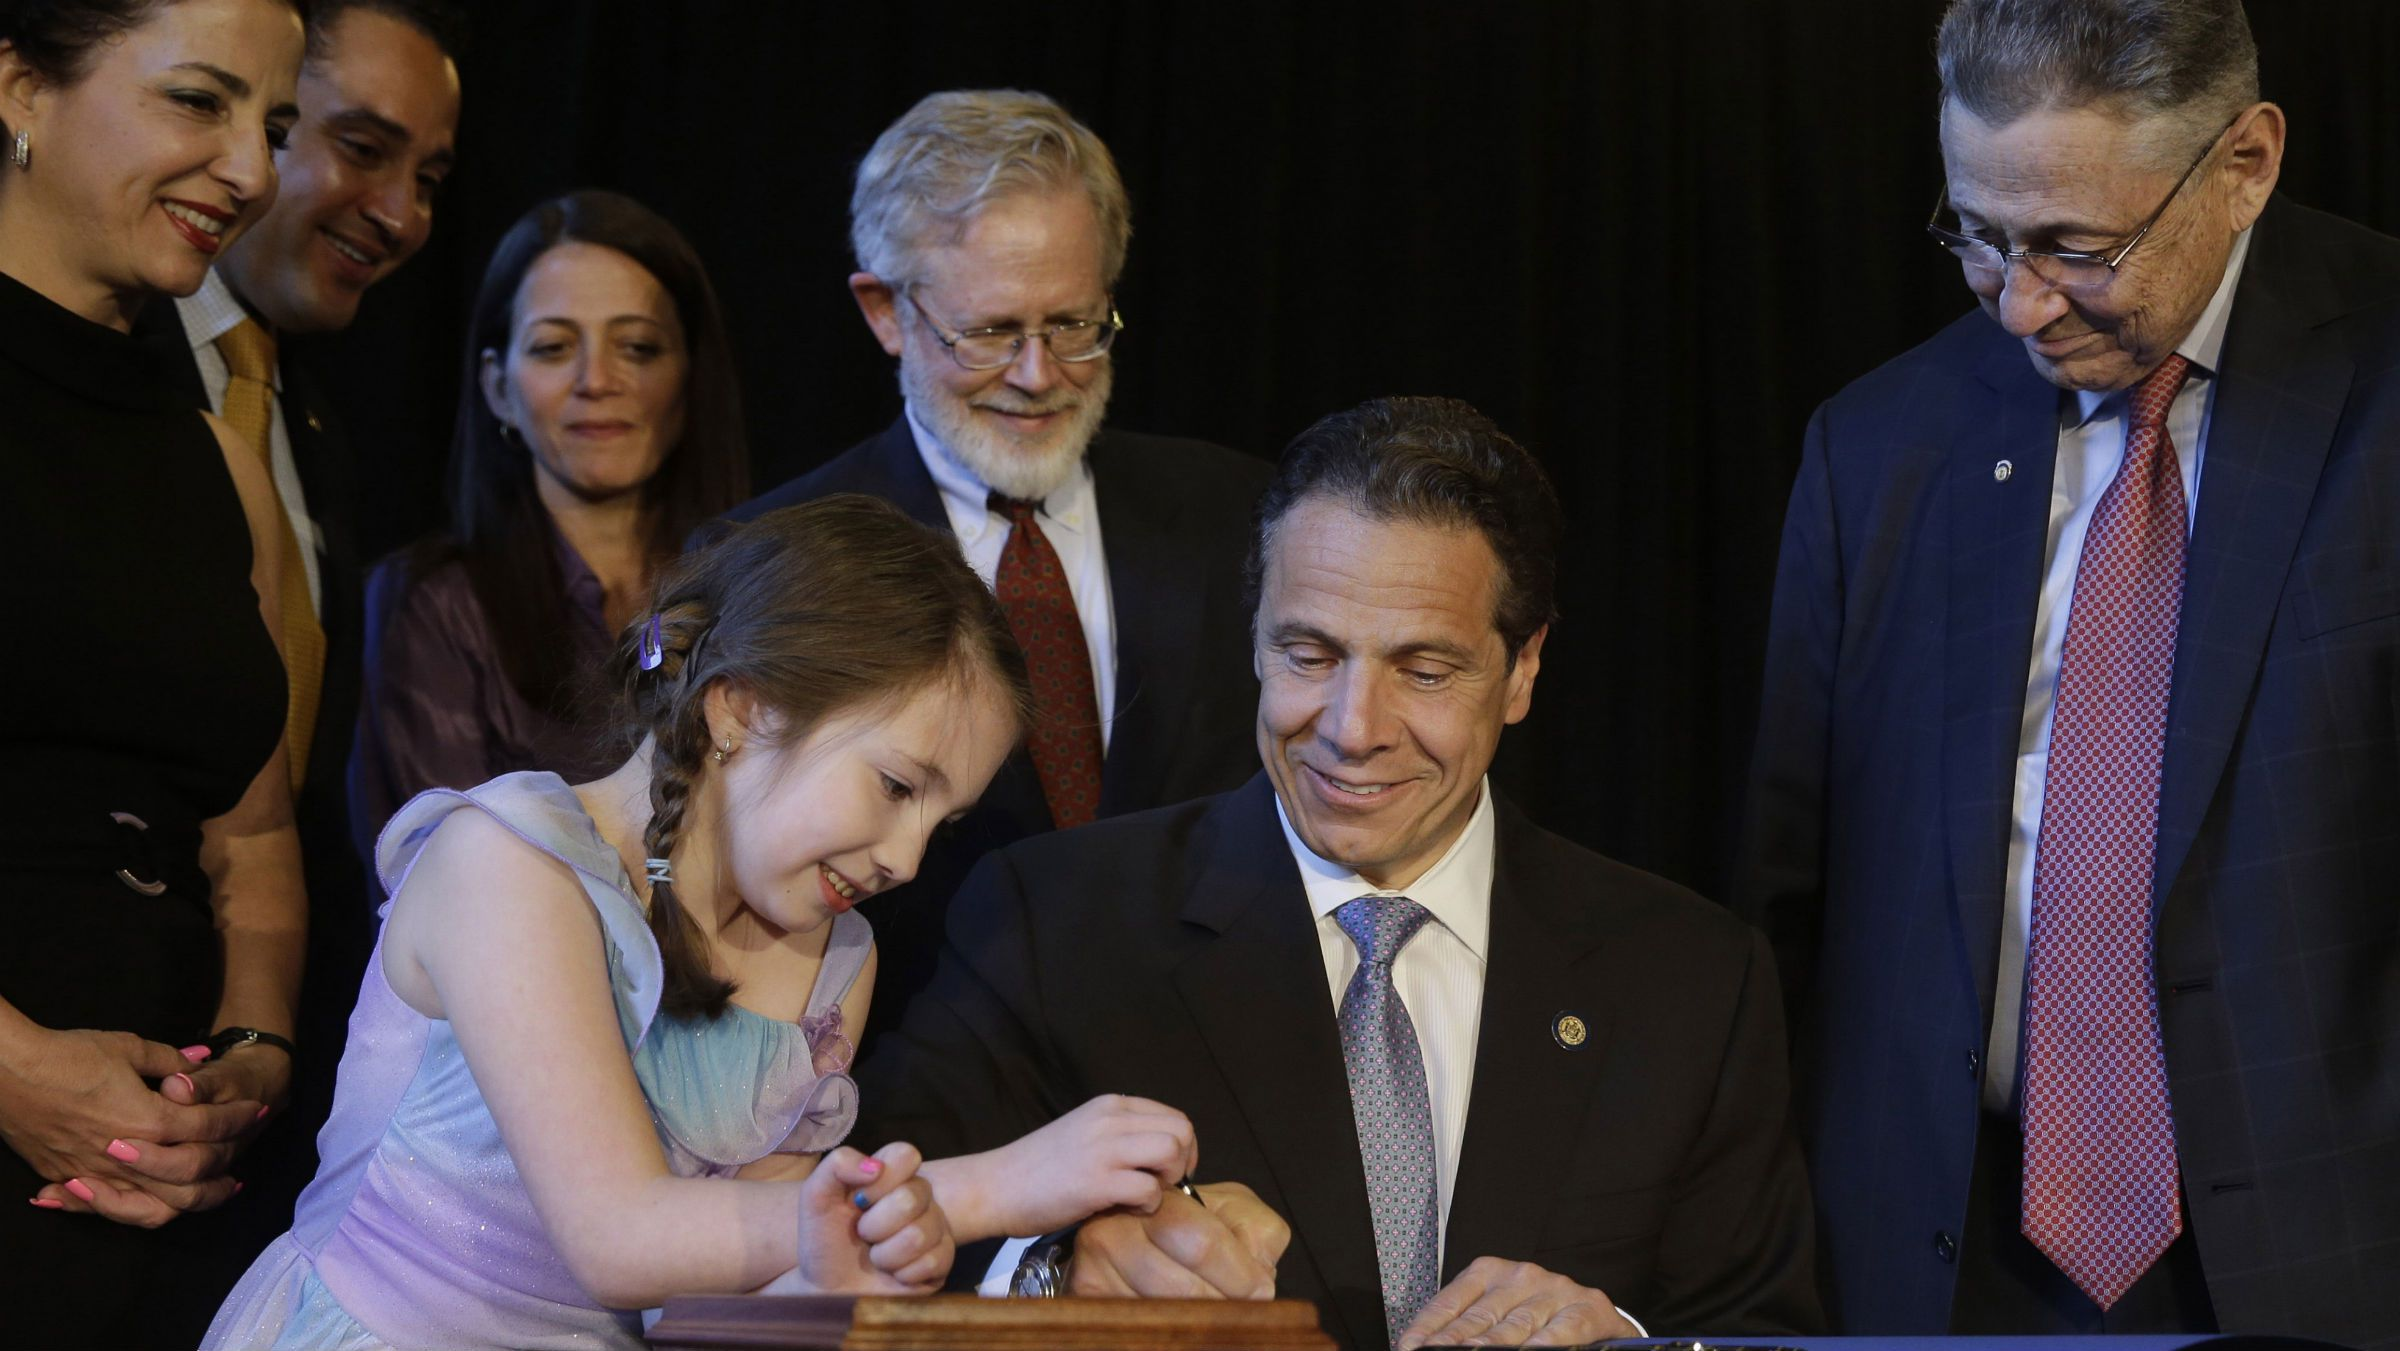 New York Governor Andrew Cuomo, second from right, gets some help from Amanda Houser, 10, while signing a ceremonial bill to establish a medical marijuana program in New York, Monday, July 7, 2014.